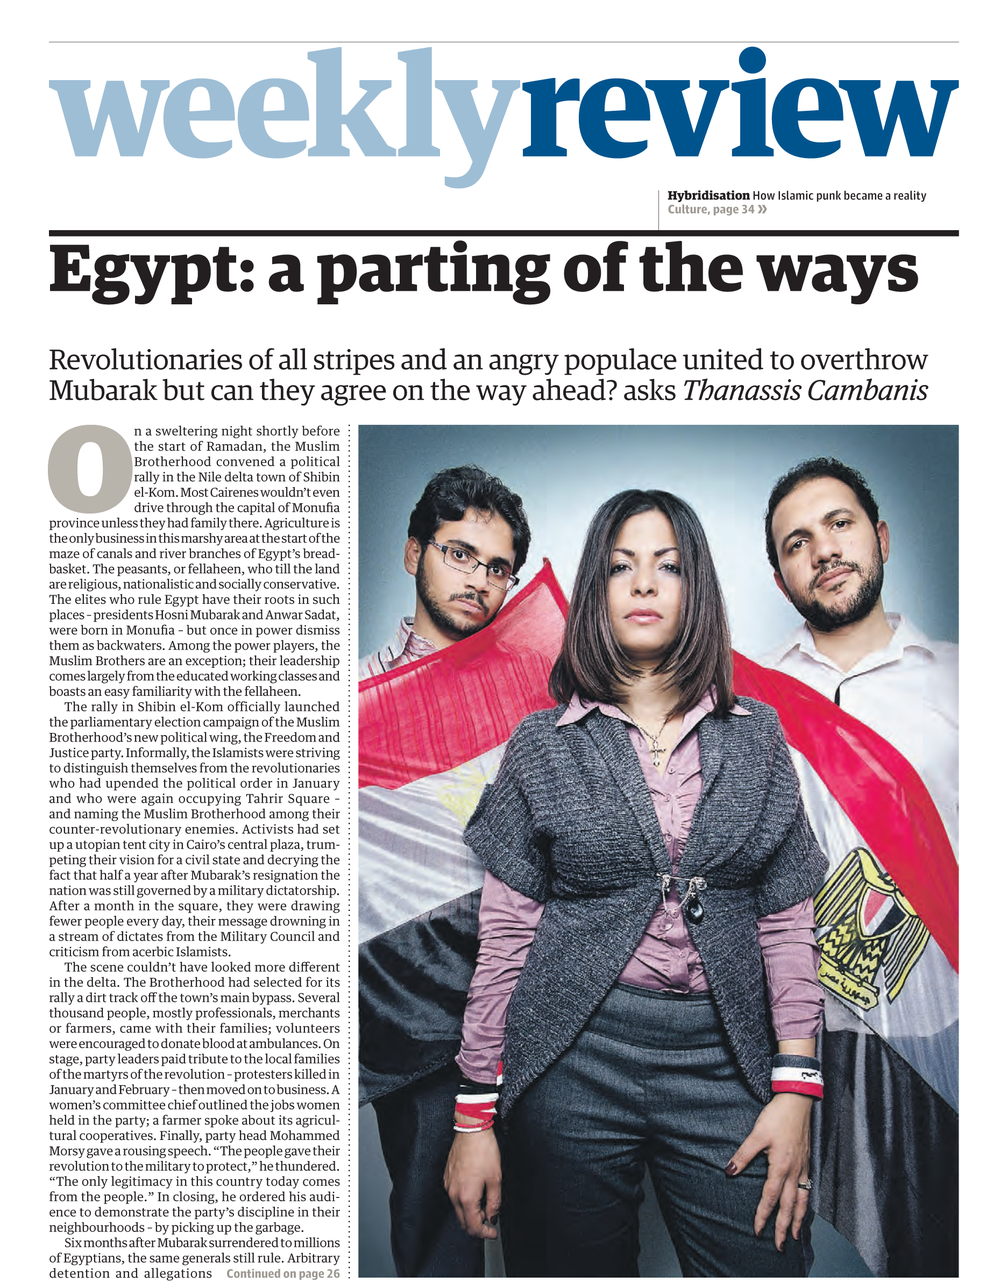 TheGuardianWeeklyReviewUK_Egypt.png